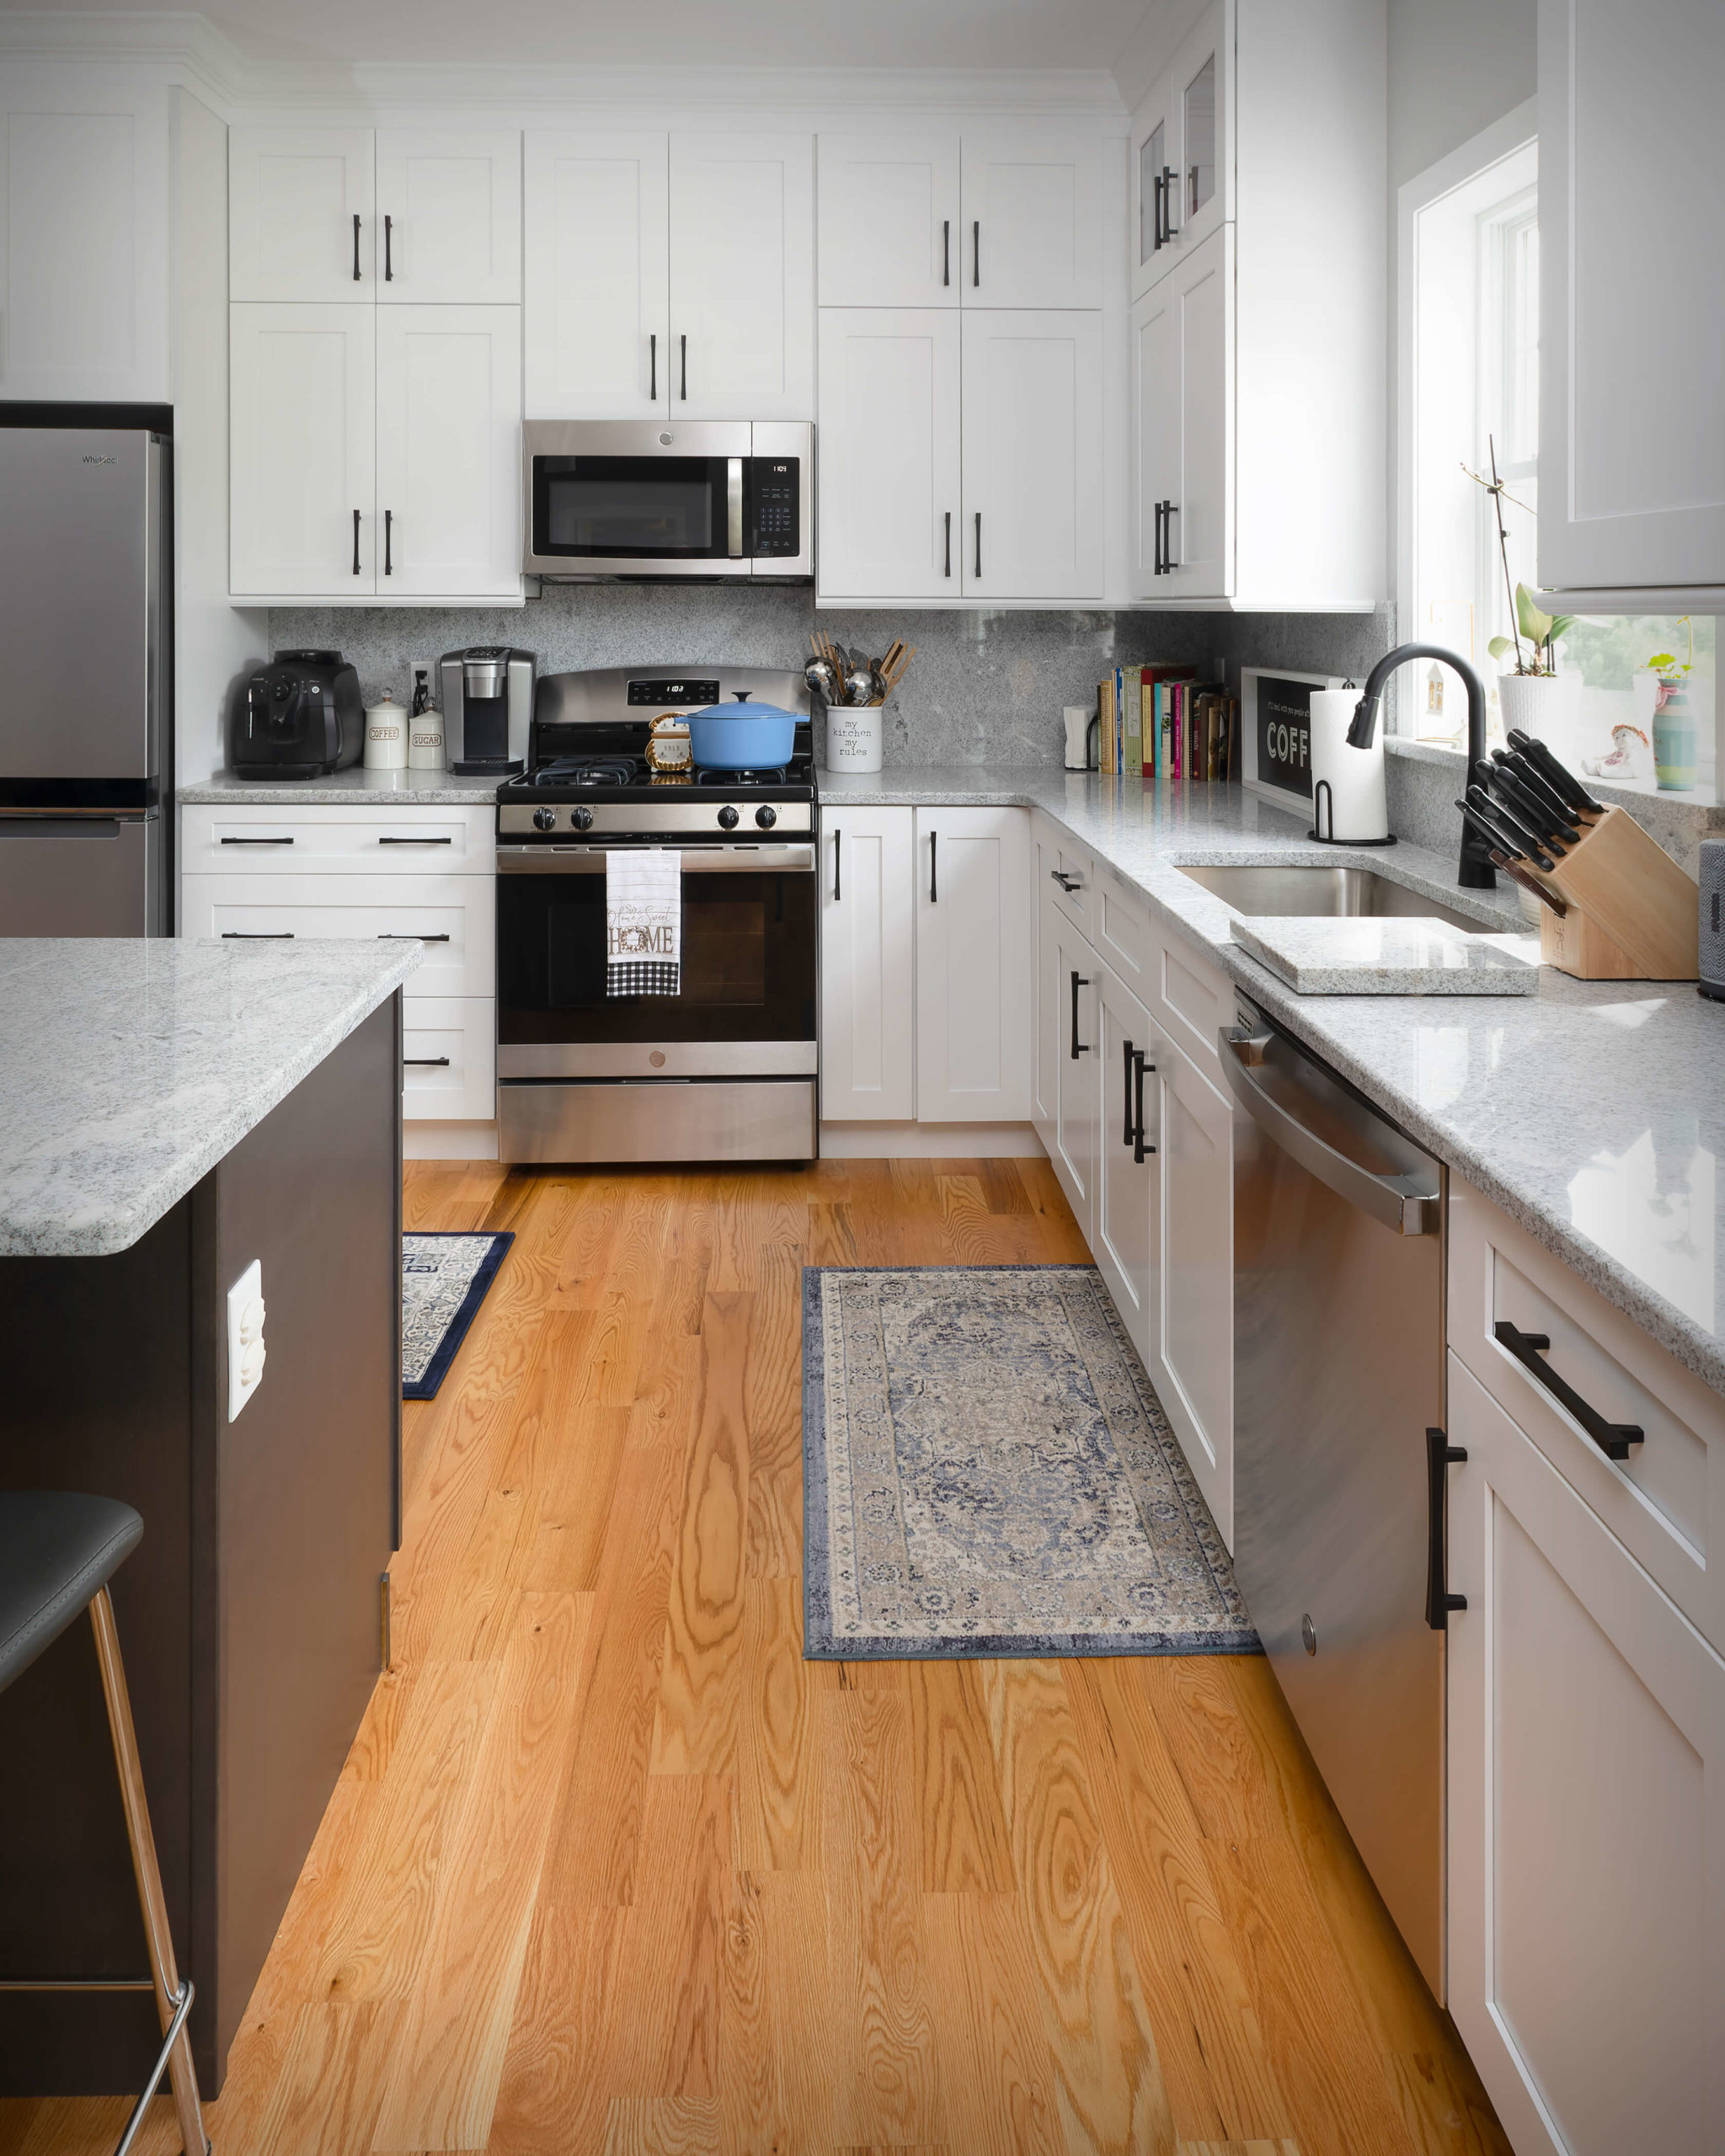 View of work surfaces featuring full height cabinets, matching drawer fronts, matching granite backsplash, and custom granite cutting board near sink in new kitchen and bathroom project in Middletown.